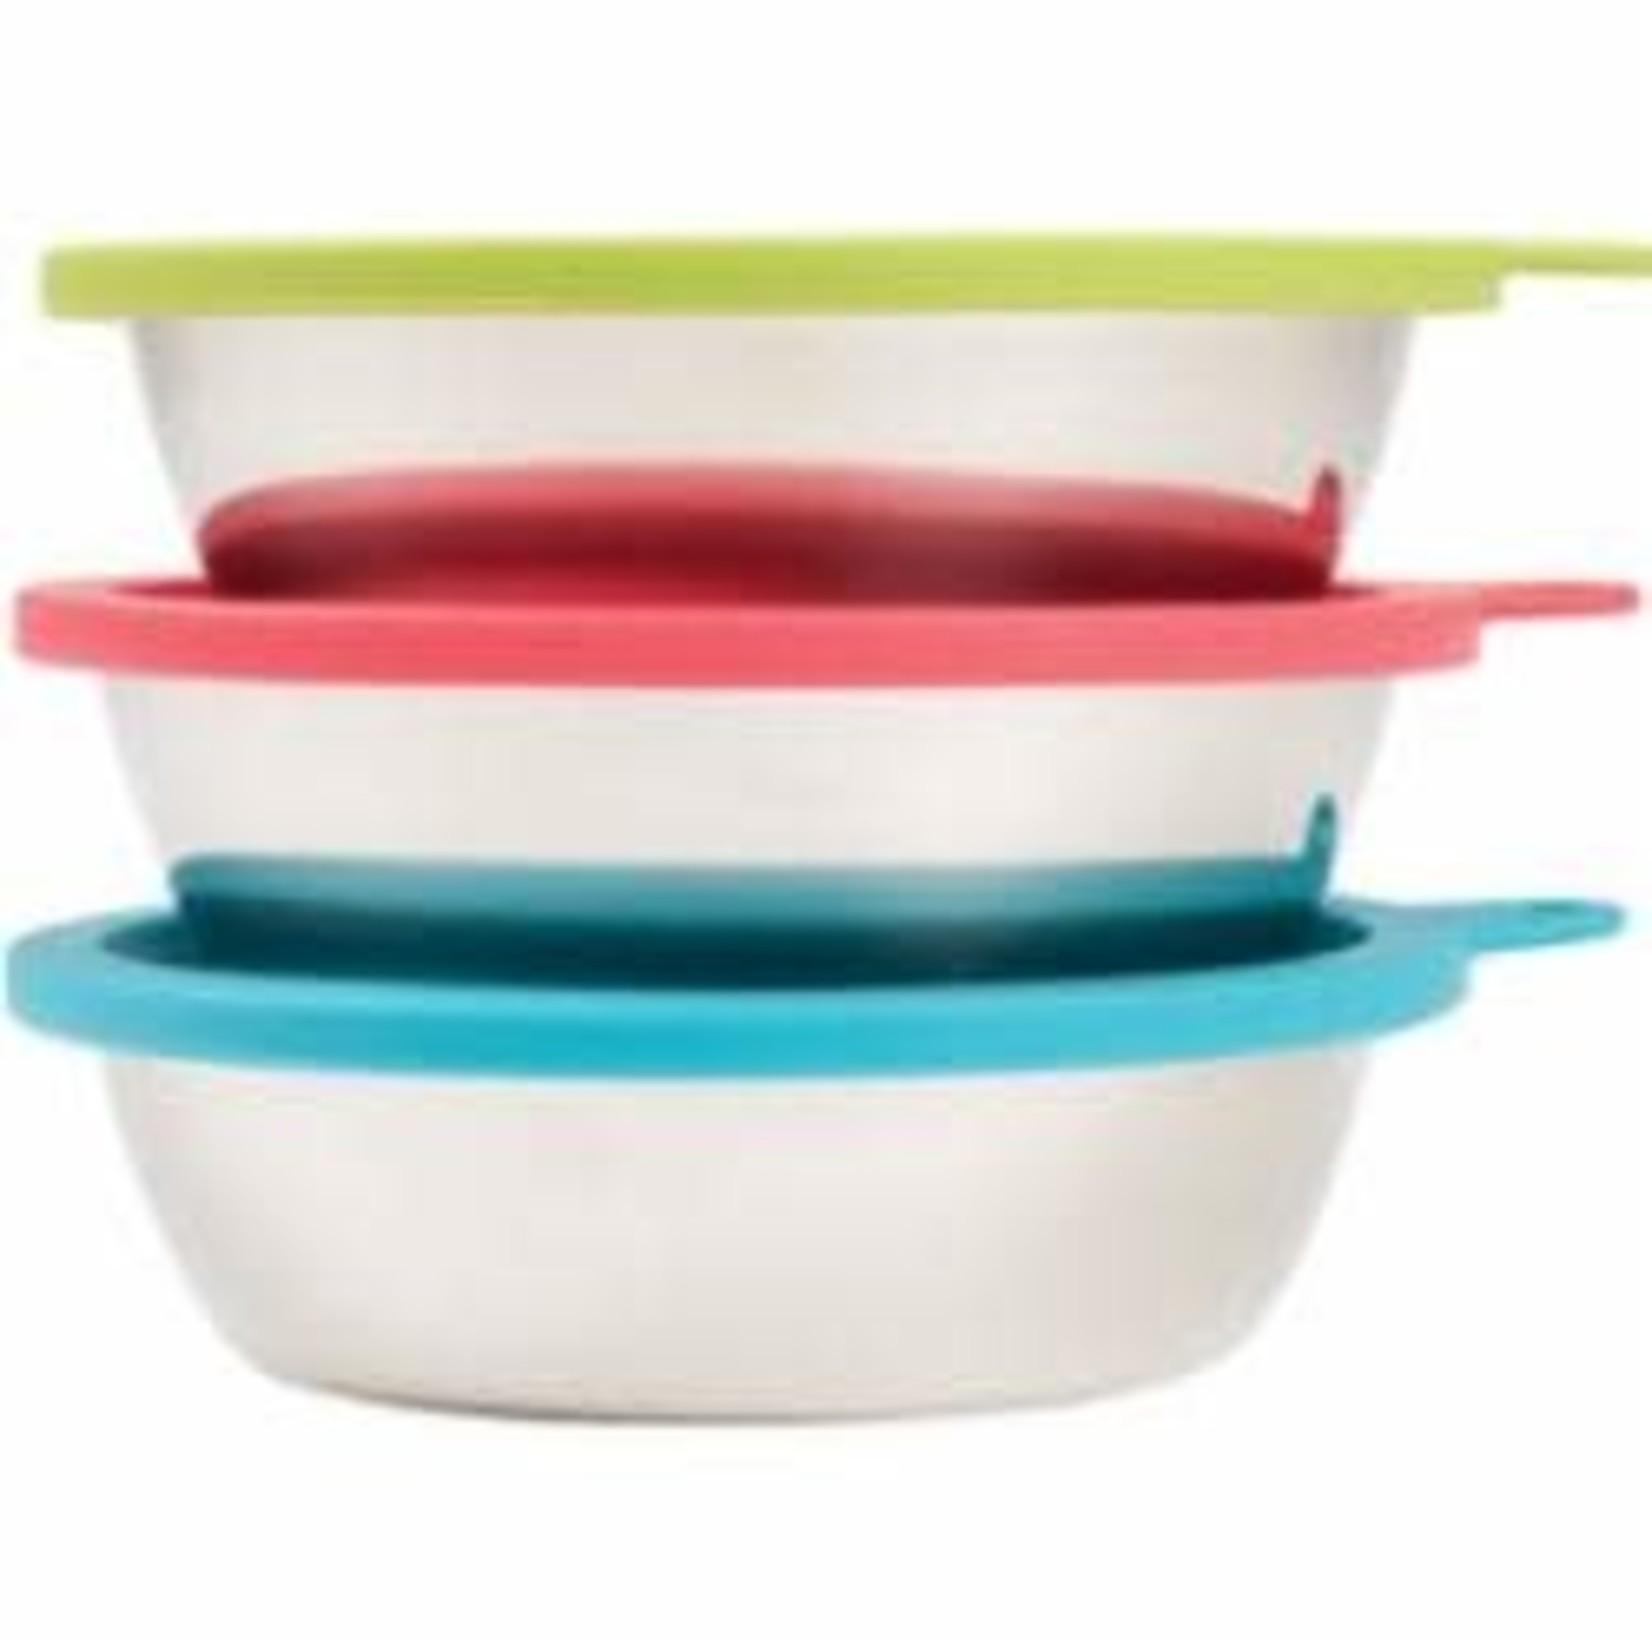 Messy Mutts Messy Mutts Dog Bowl & Lid 3 Pack, 6 CUP